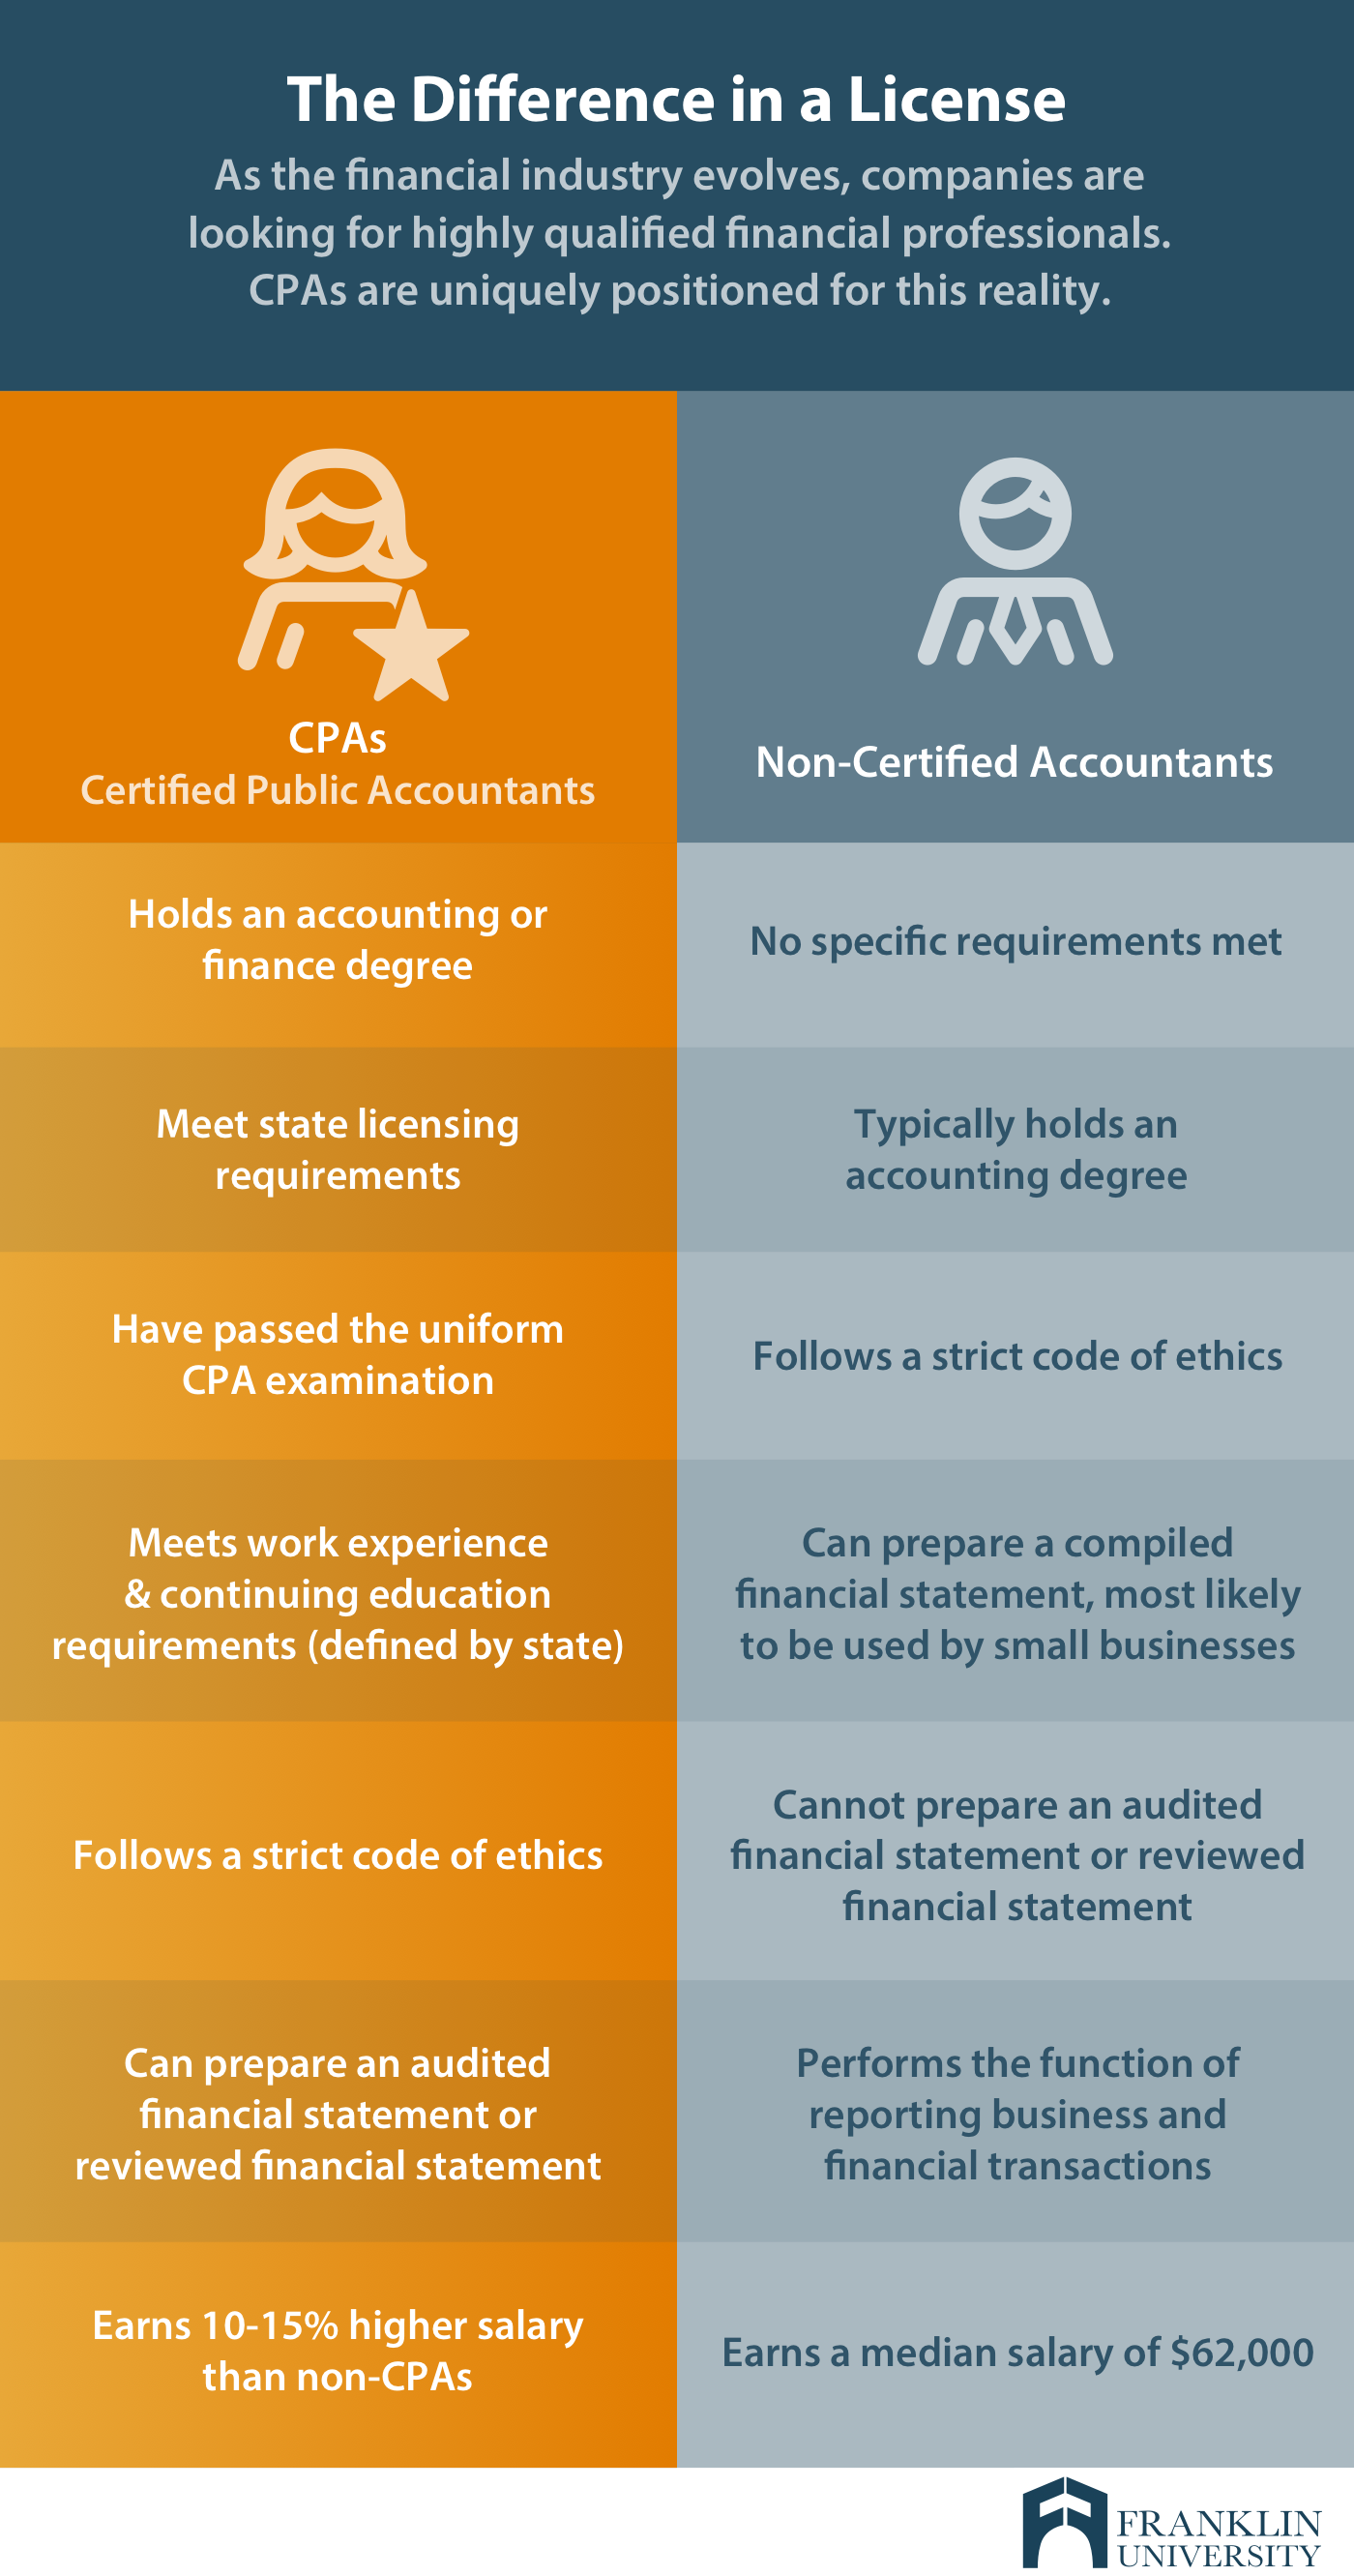 graphic describes the difference a license can make in the financial industry